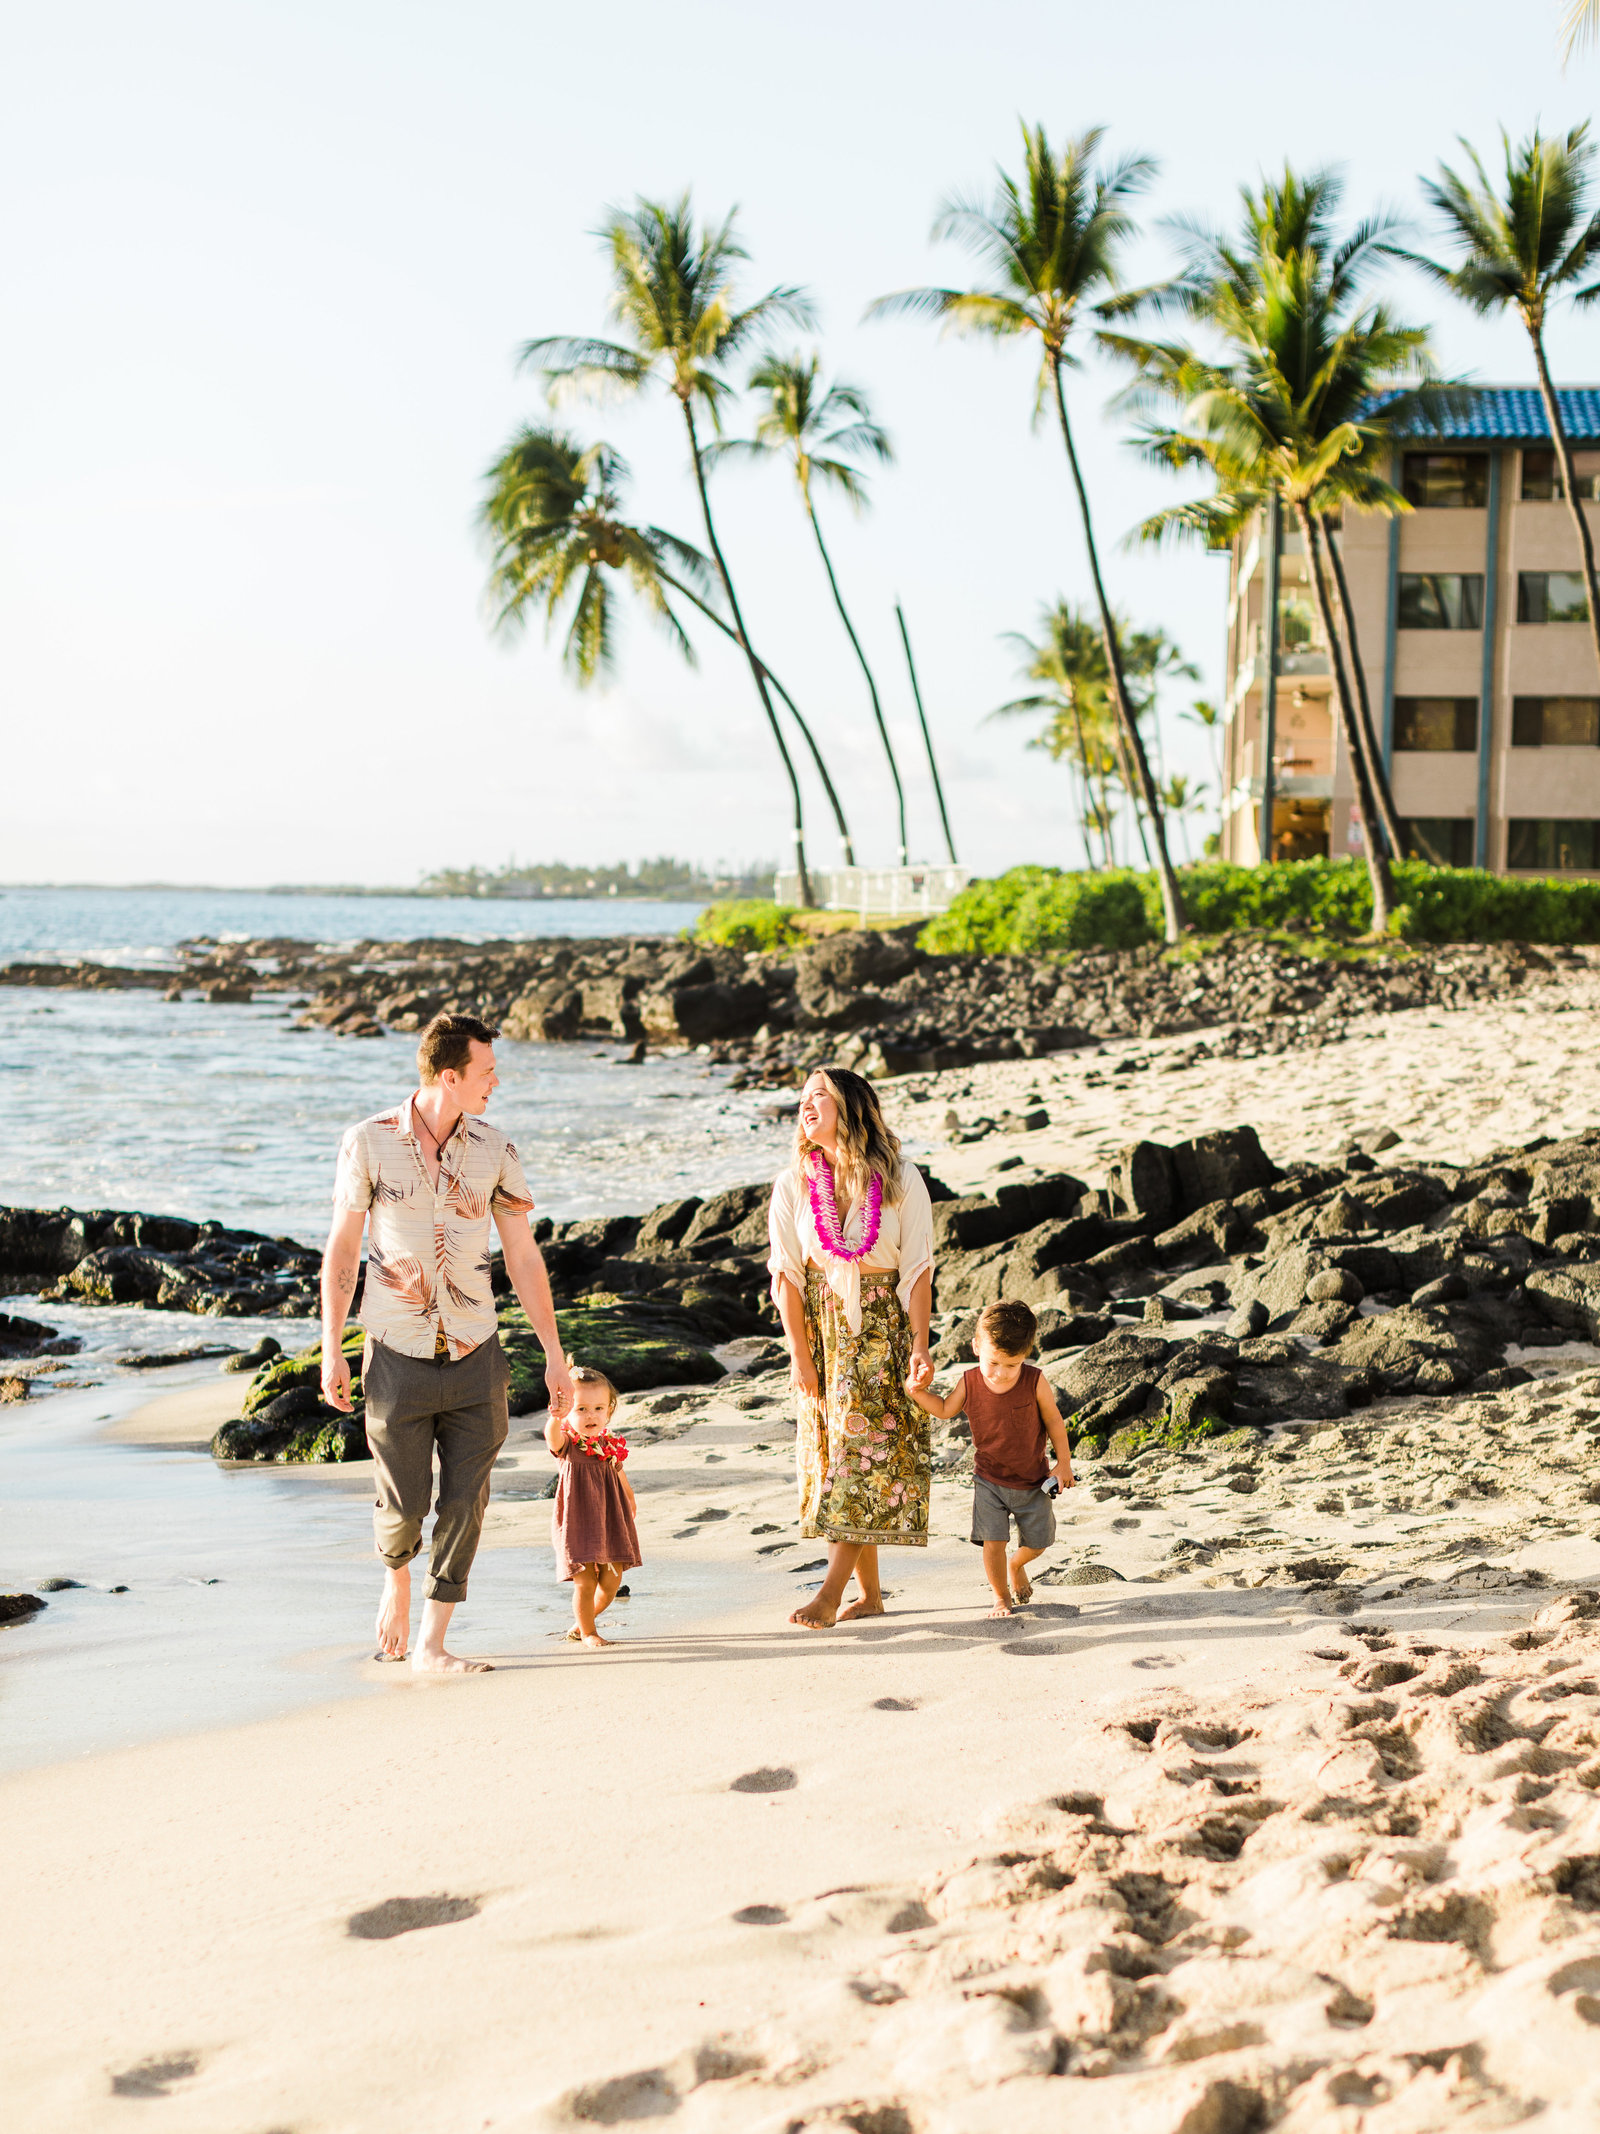 Young couple walk on a beach in Hawaii with their two young children, surrounded by lava rocks and palm trees while wearing leis